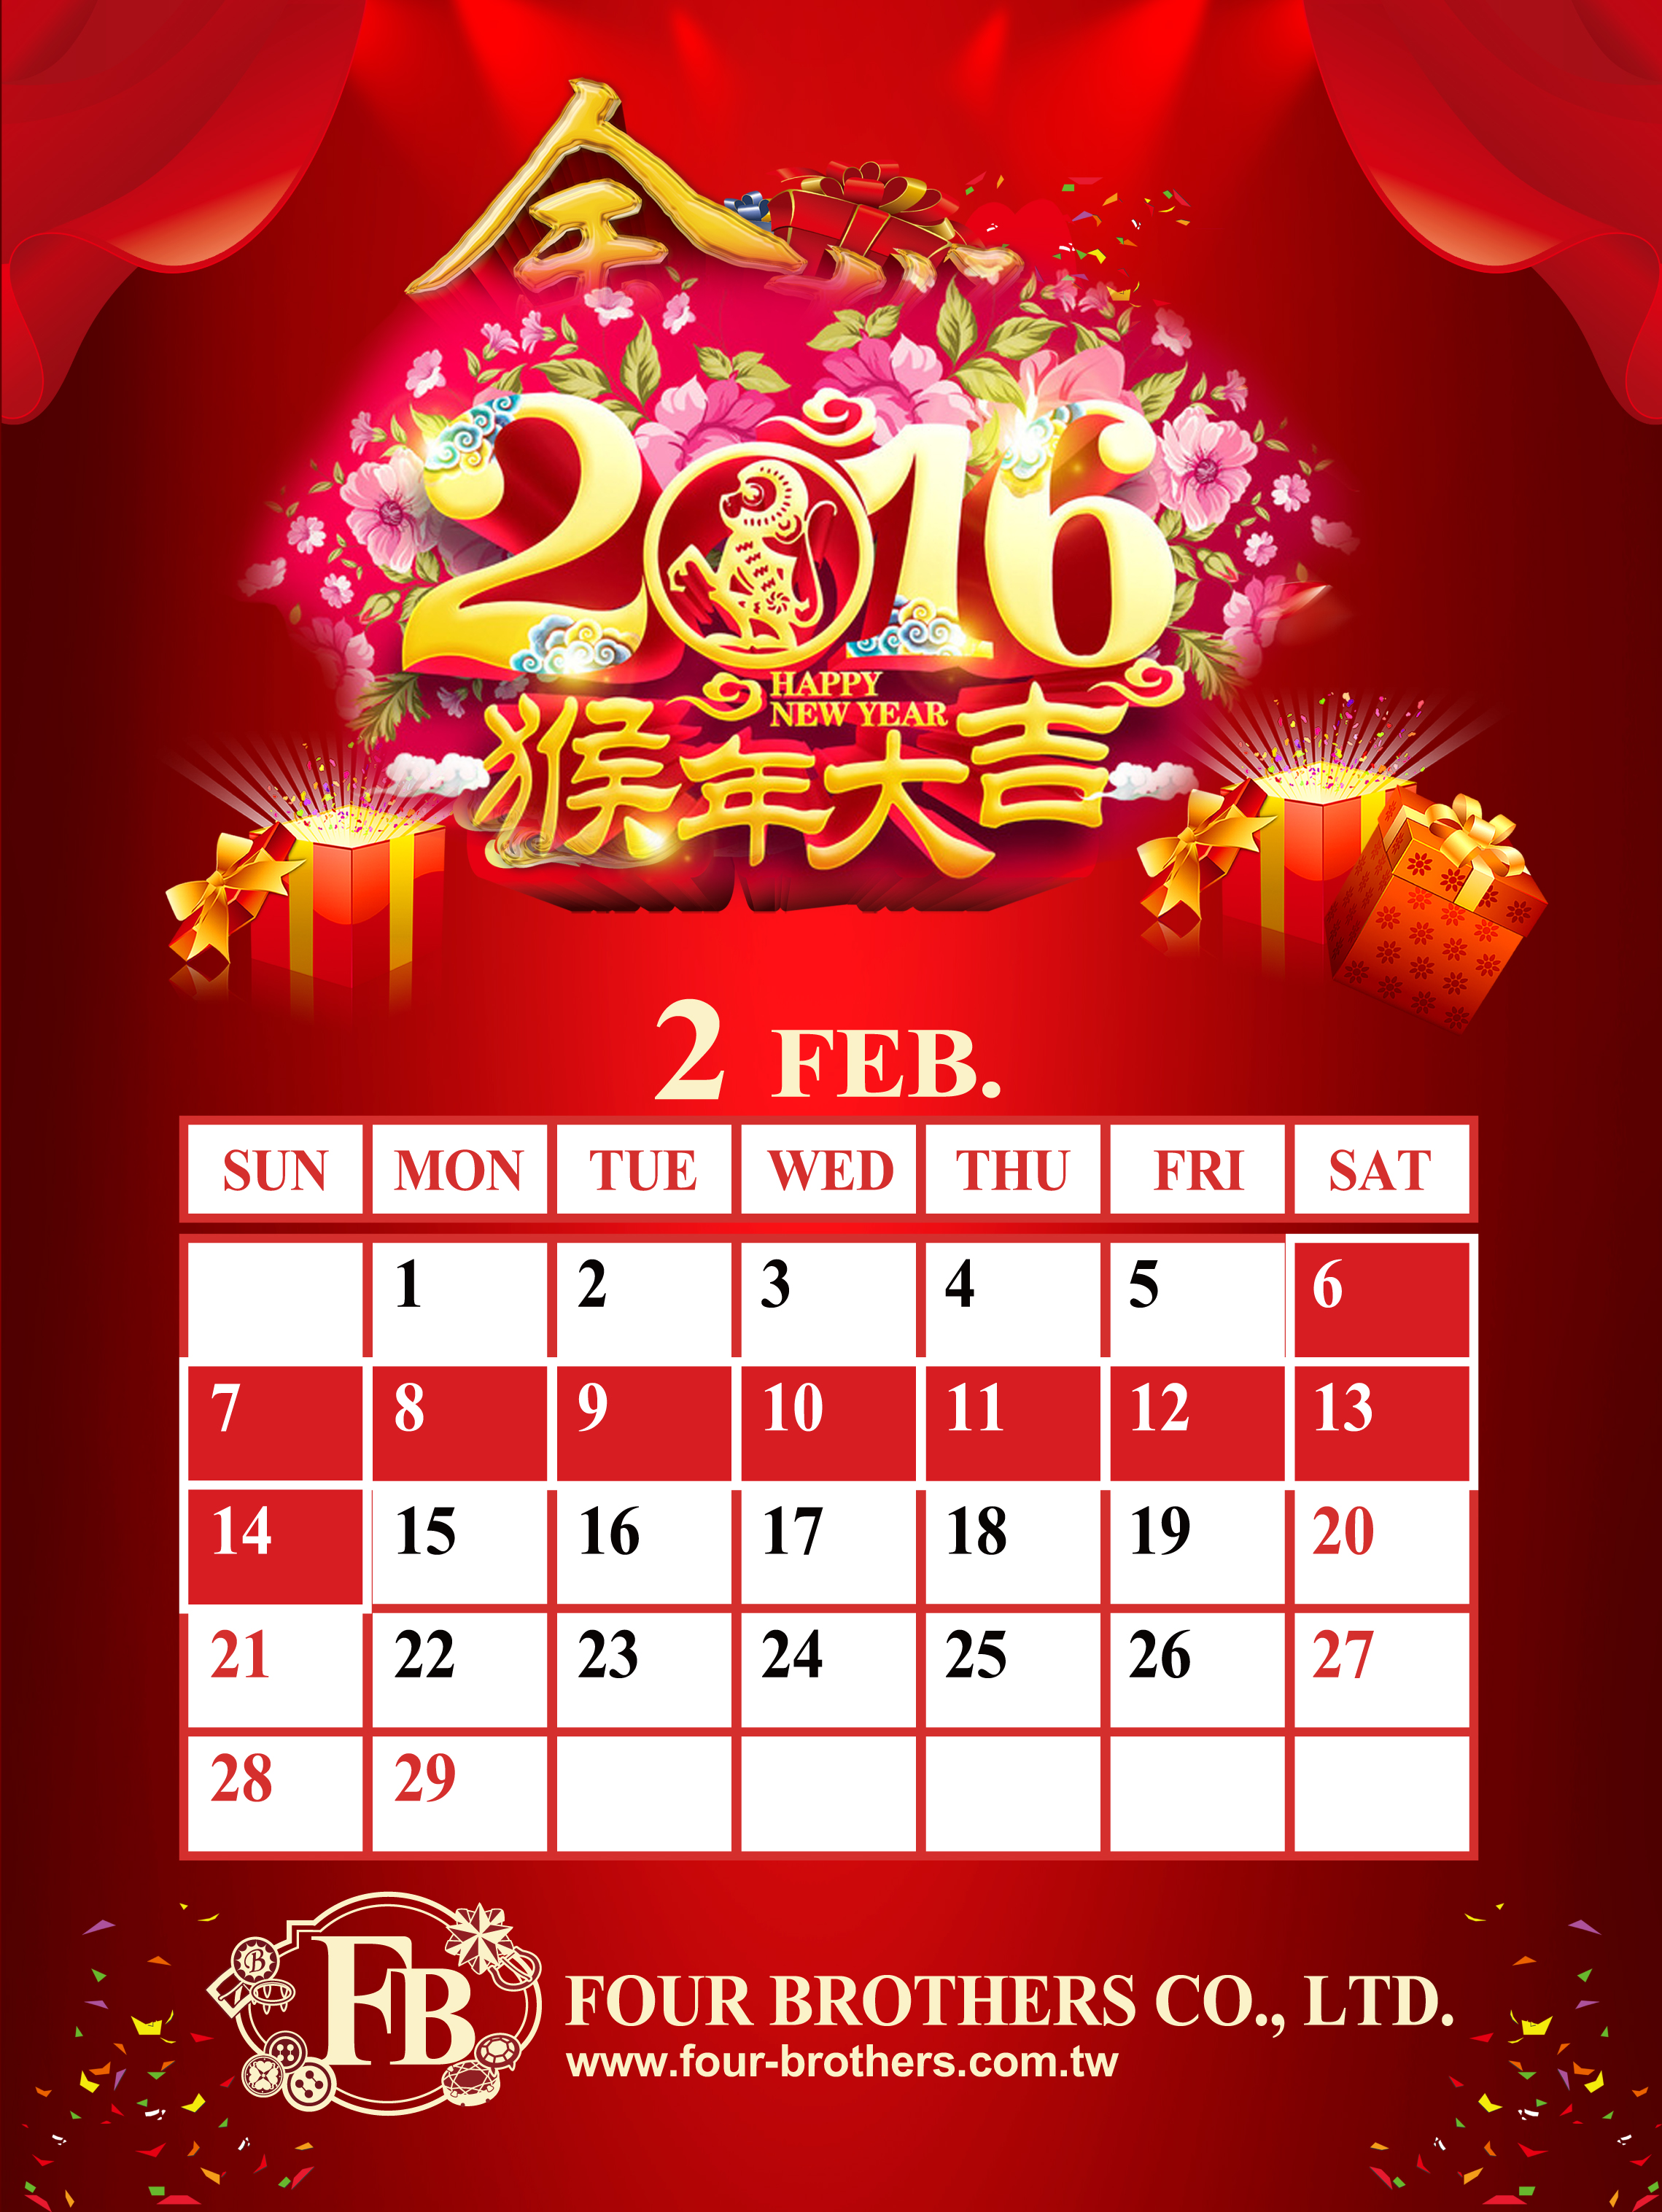 2016 chinese new year holiday office close period 2016020620160214 - Chinese New Year 2016 Calendar